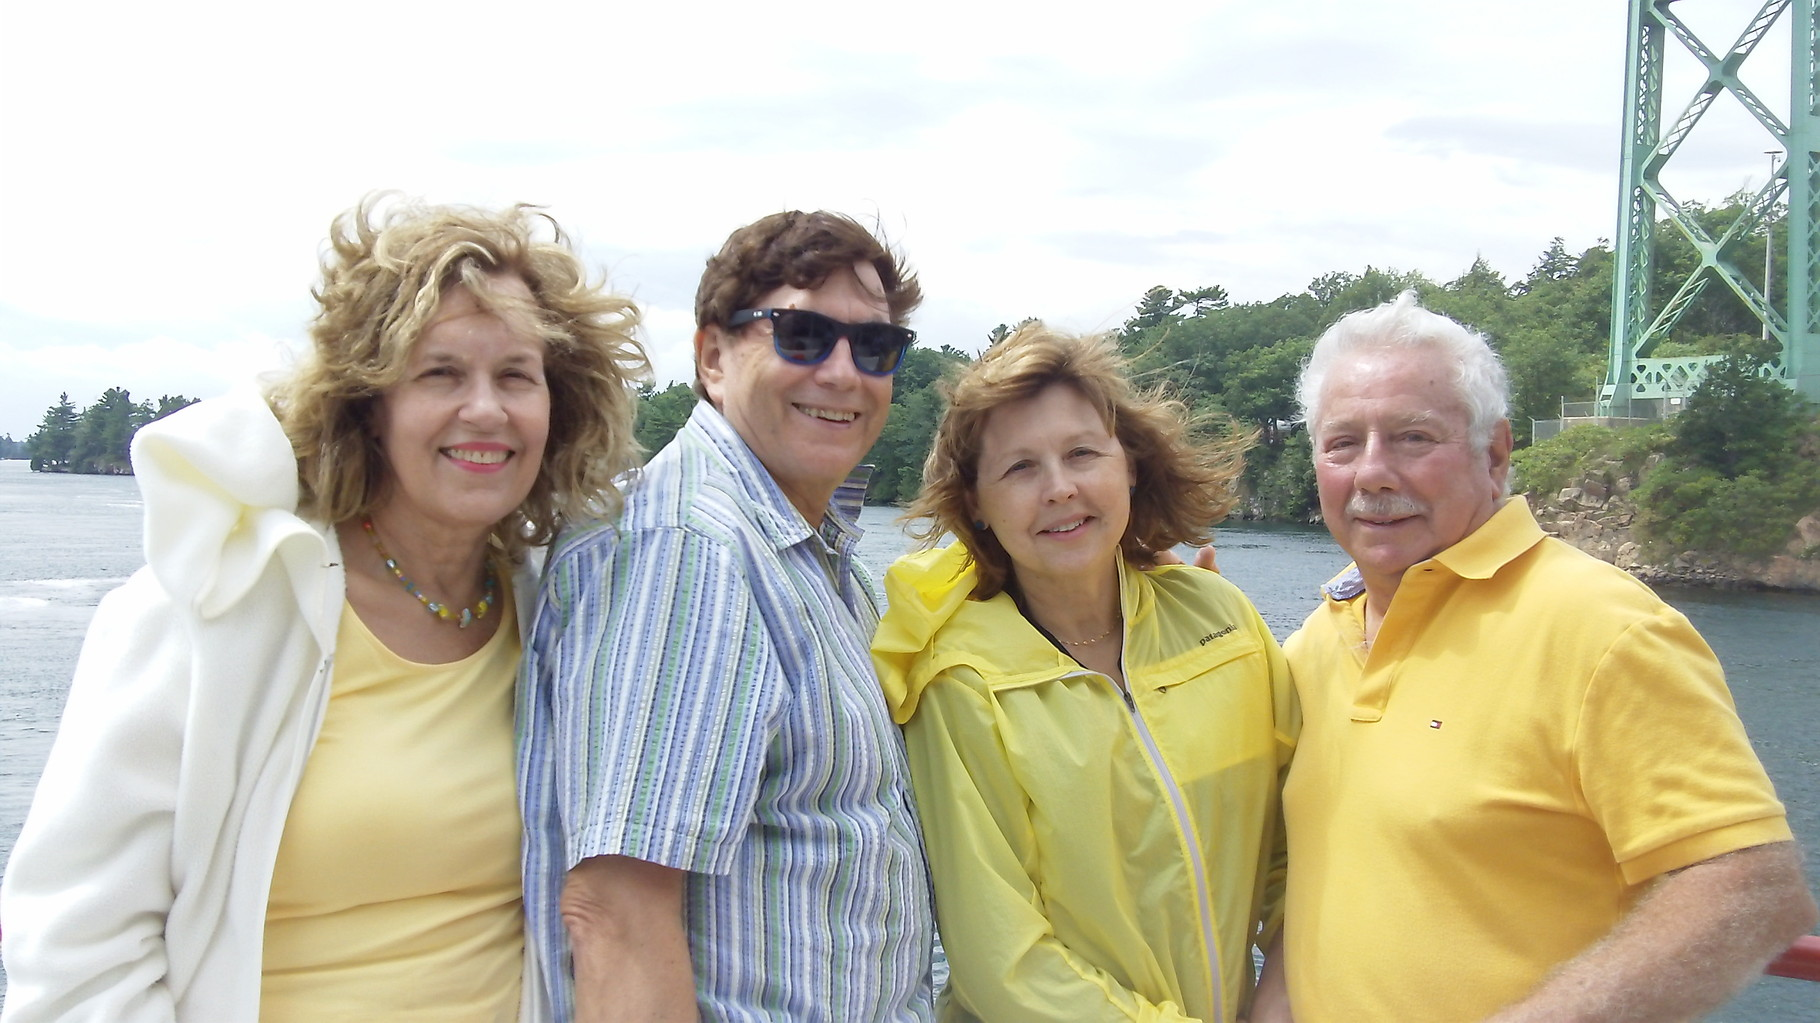 Lorraine, John, Barbara and Don Fischman, Thousand Islands, 2015